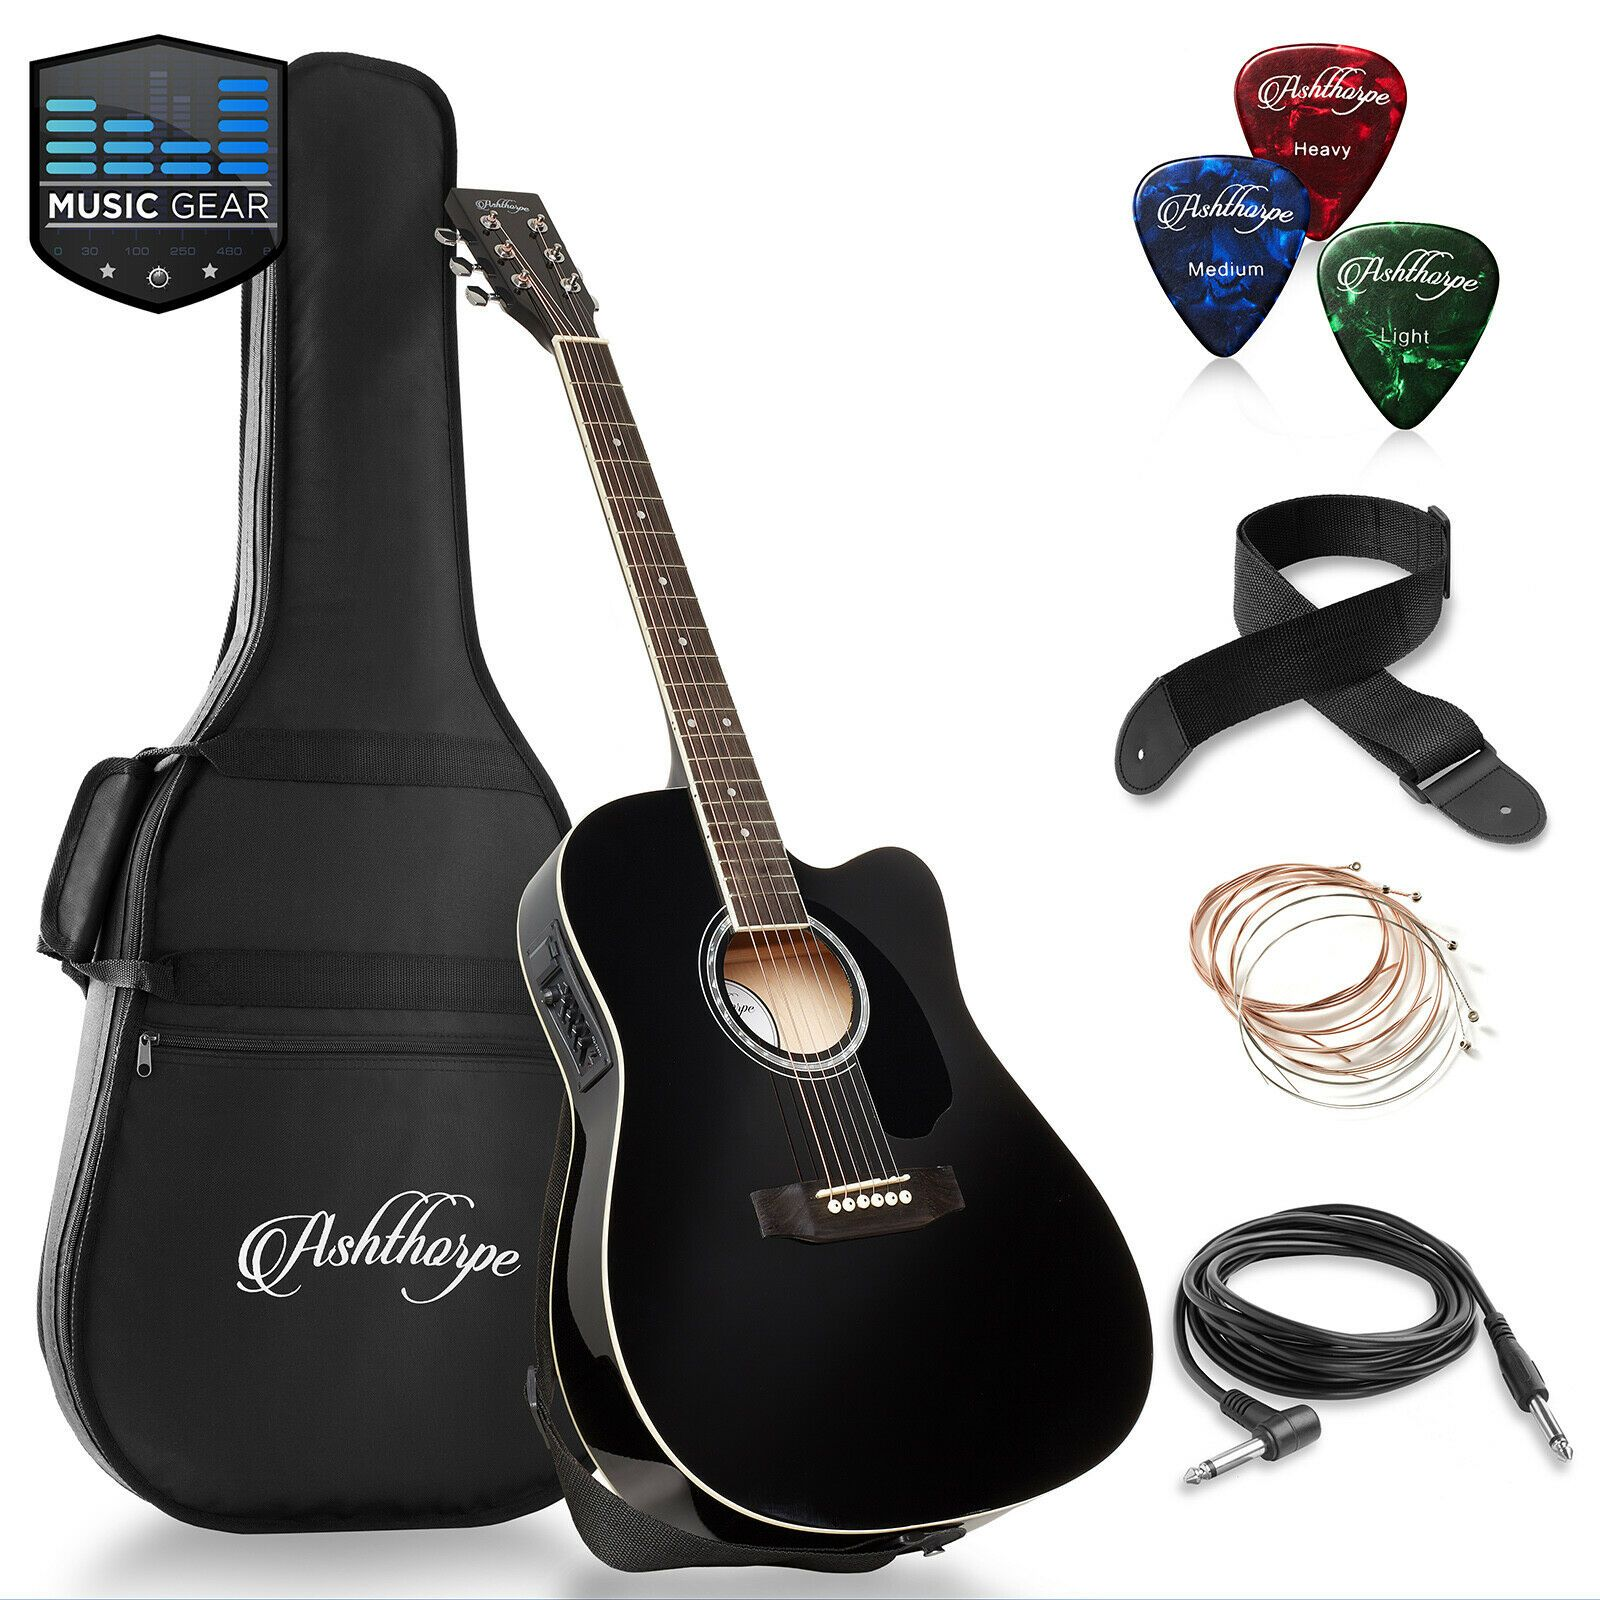 Full Size Cutaway Thinline Acoustic Electric Guitar With Gig Bag Ideas Of Guitar Gui In 2020 Acoustic Electric Guitar Acoustic Electric Electric Guitar Accessories